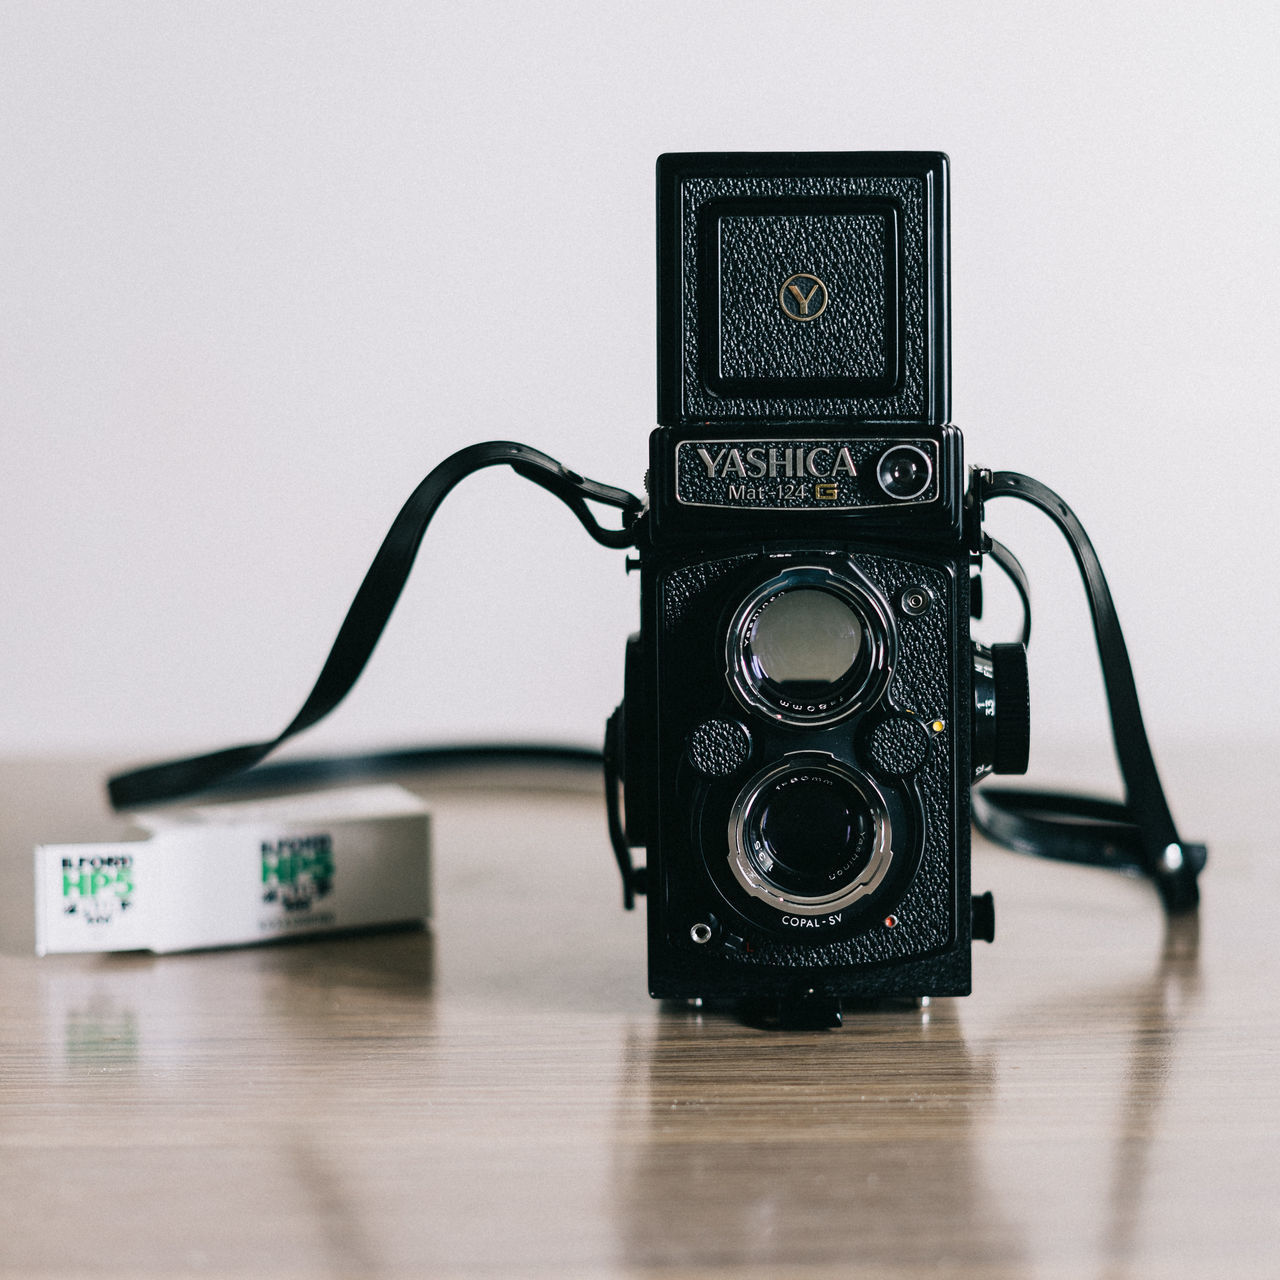 Checking out a new toy… Analogue Analogue Photography Film Film Photography Filmcamera Filmisnotdead Ilfordhp5 Lieblingsteil Medium Format Mediumformatphotography Old-fashioned Technology Yashica Yashica Mat 124 Yashicamat124g Tlr Twin Lens Reflex